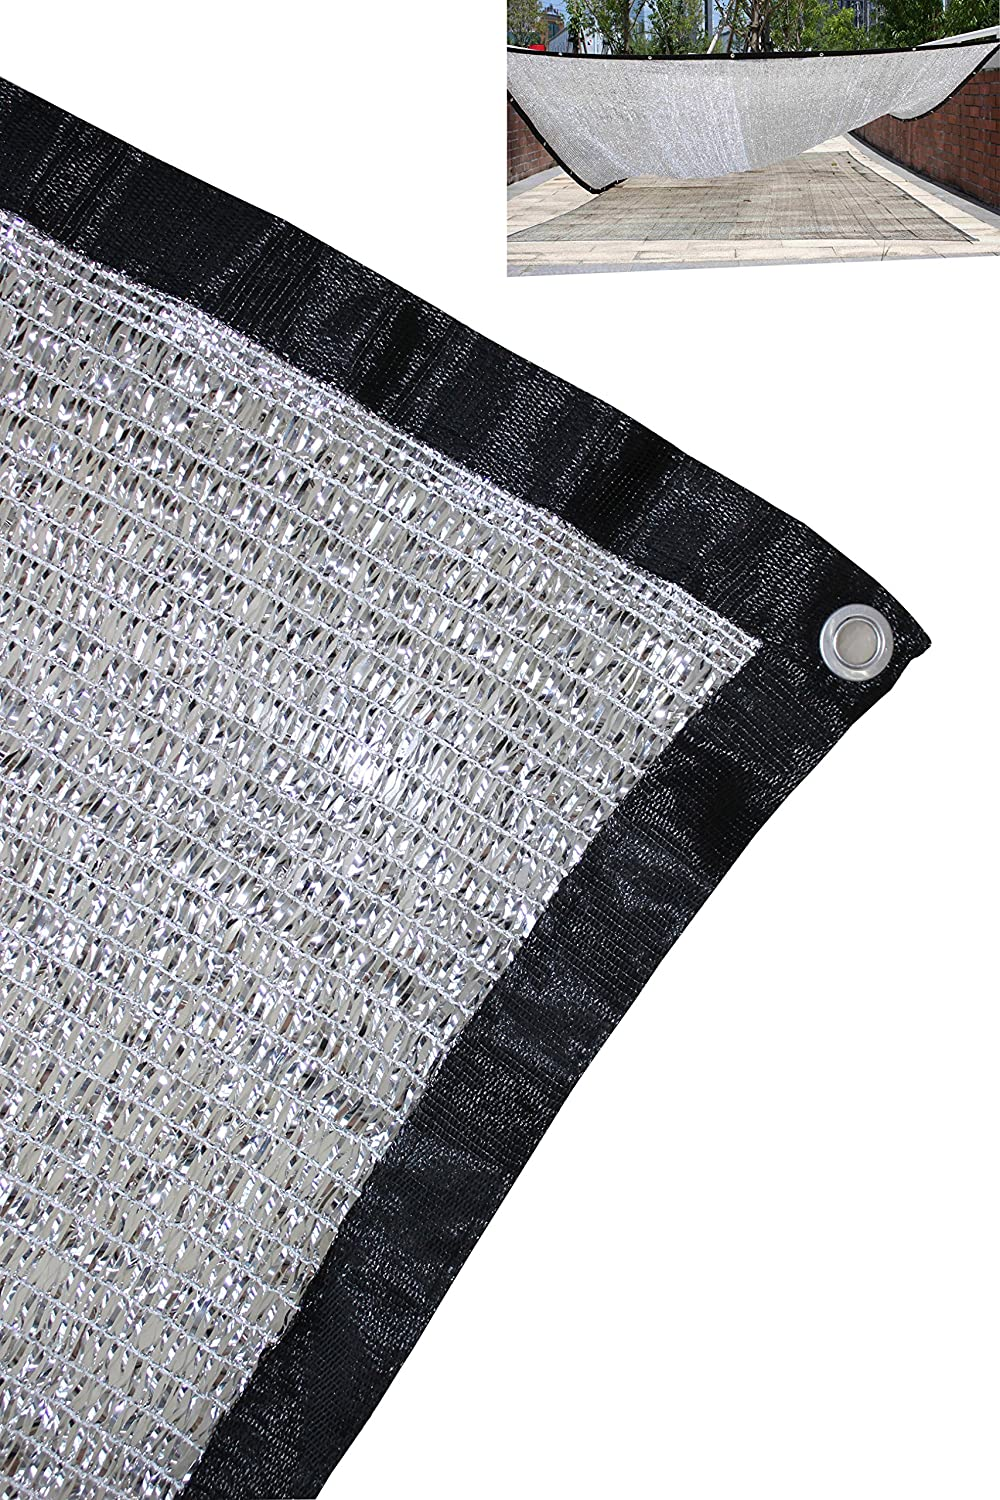 Jesasy 70% 10 ft x 14 ft Aluminet Shade Cloth Panels with Grommets